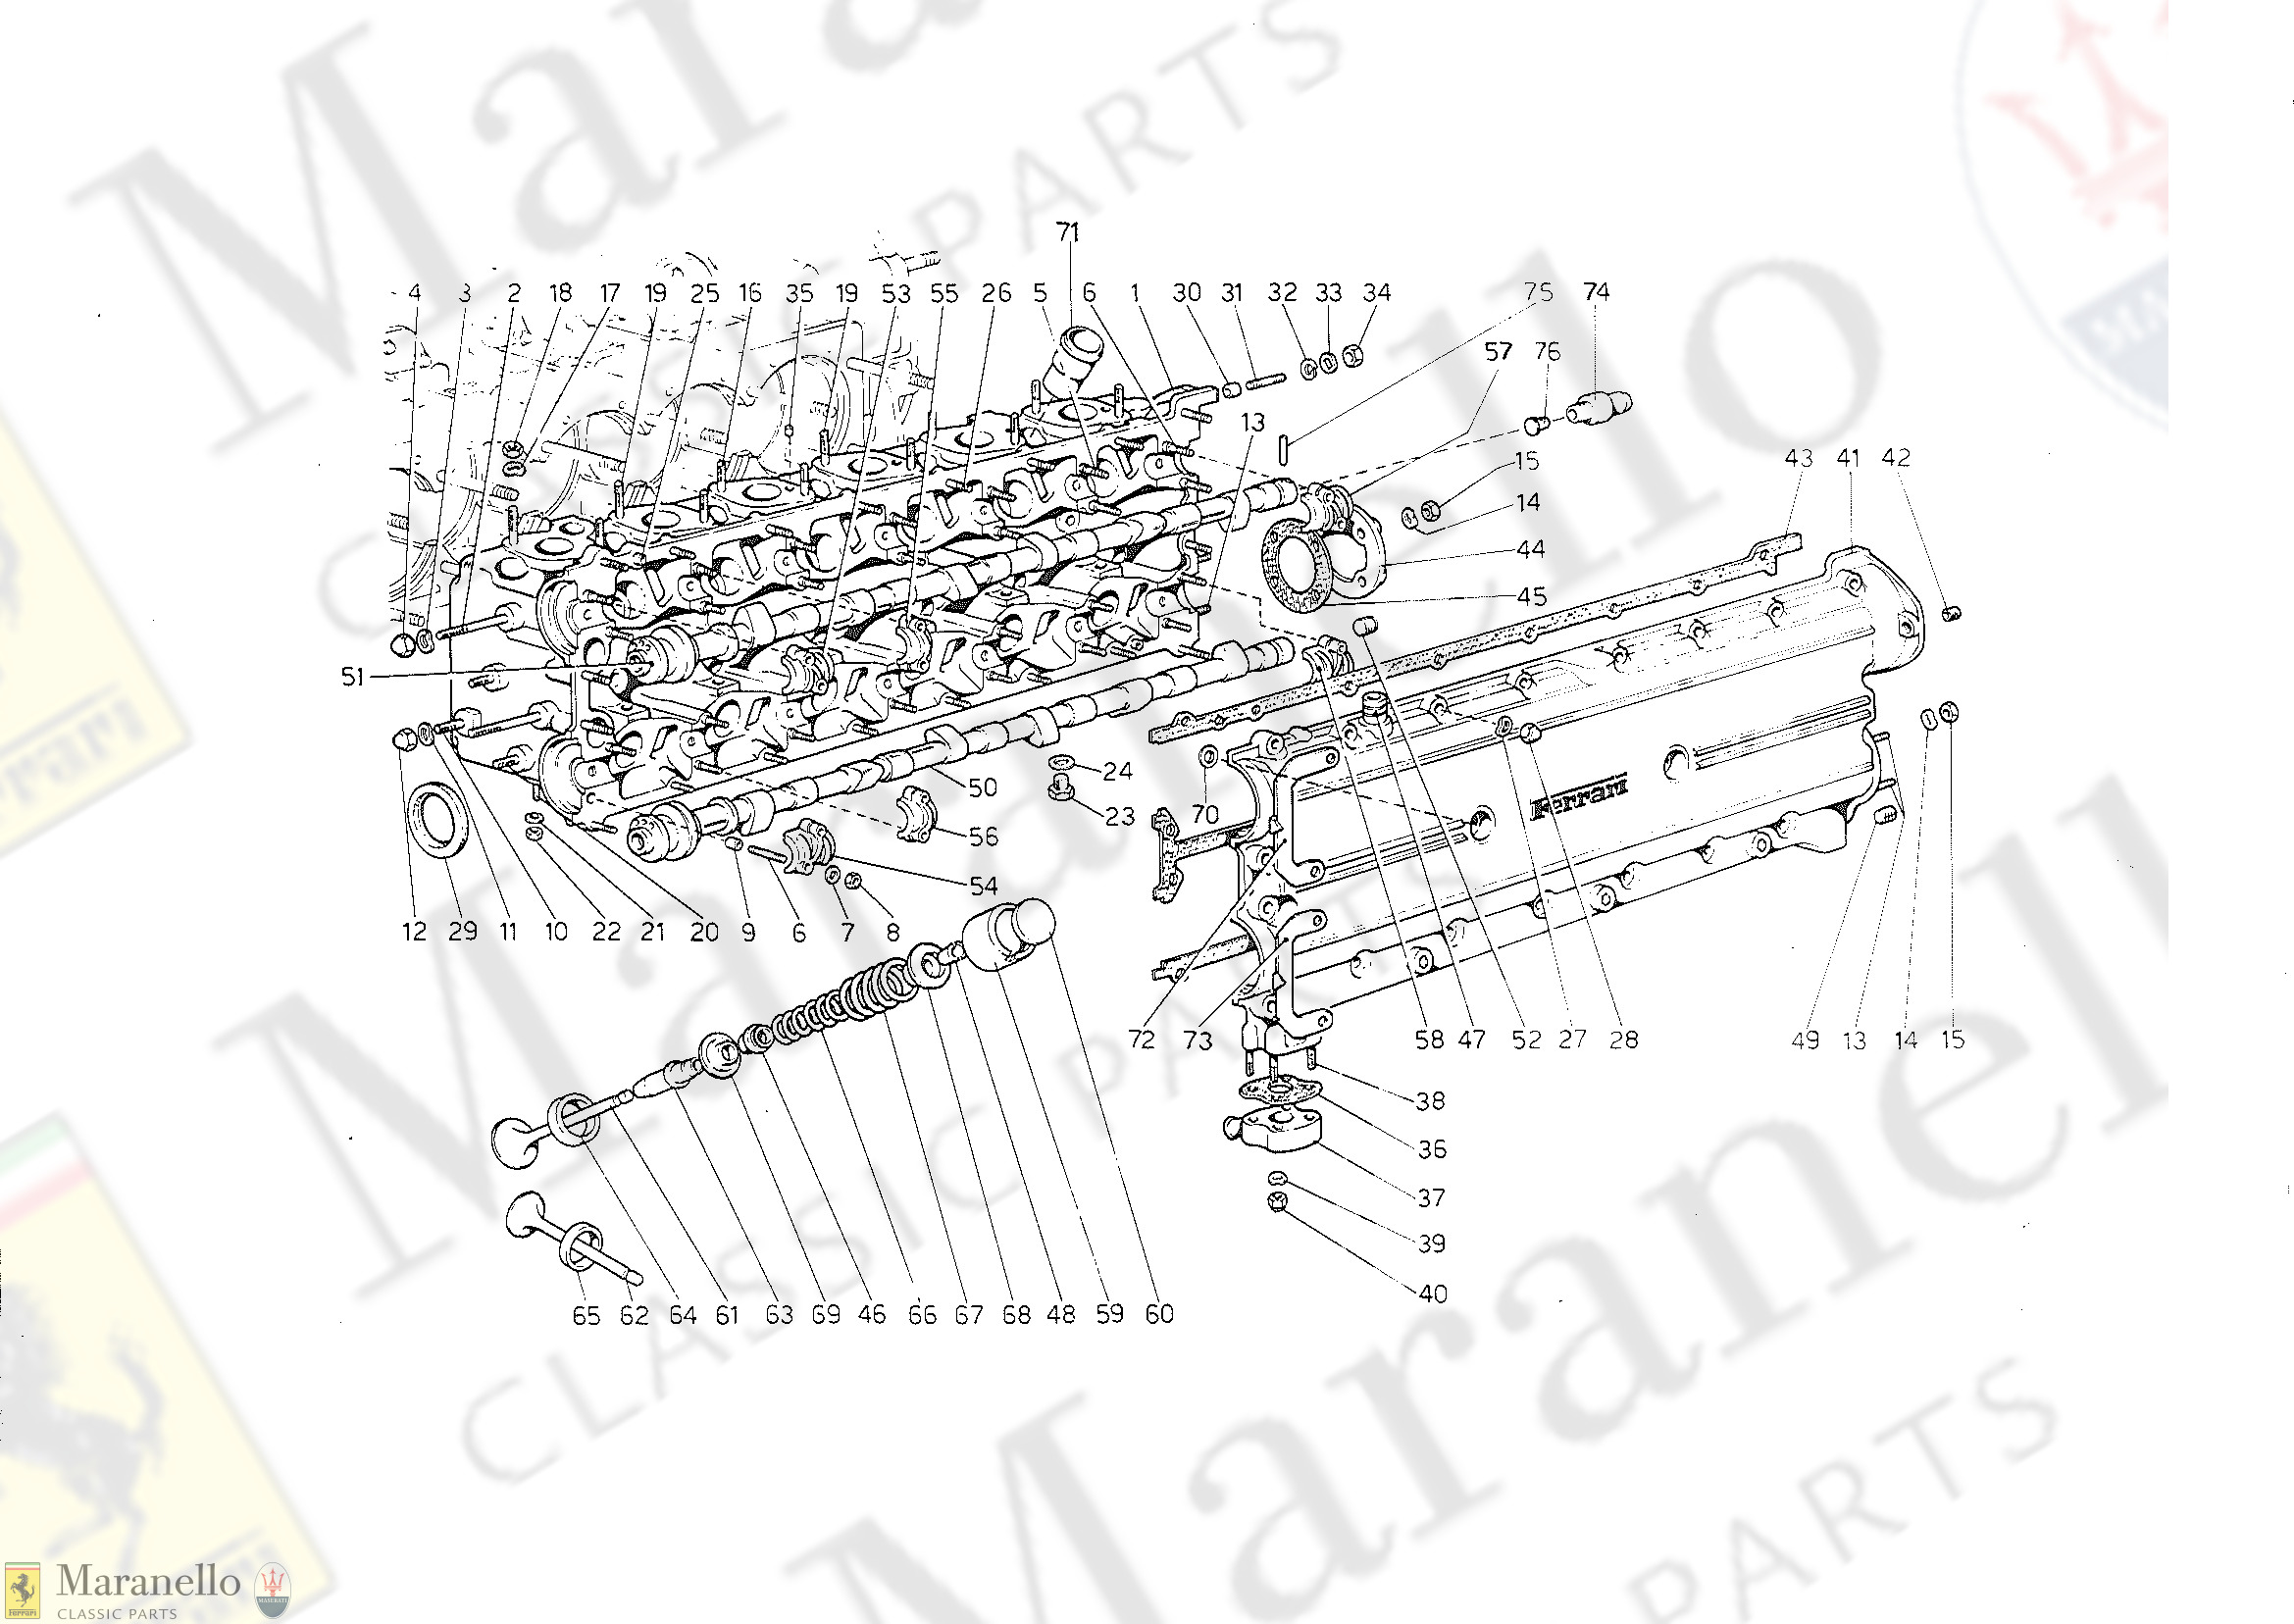 004A - Cylinder Head (Left) (1978 Revision)